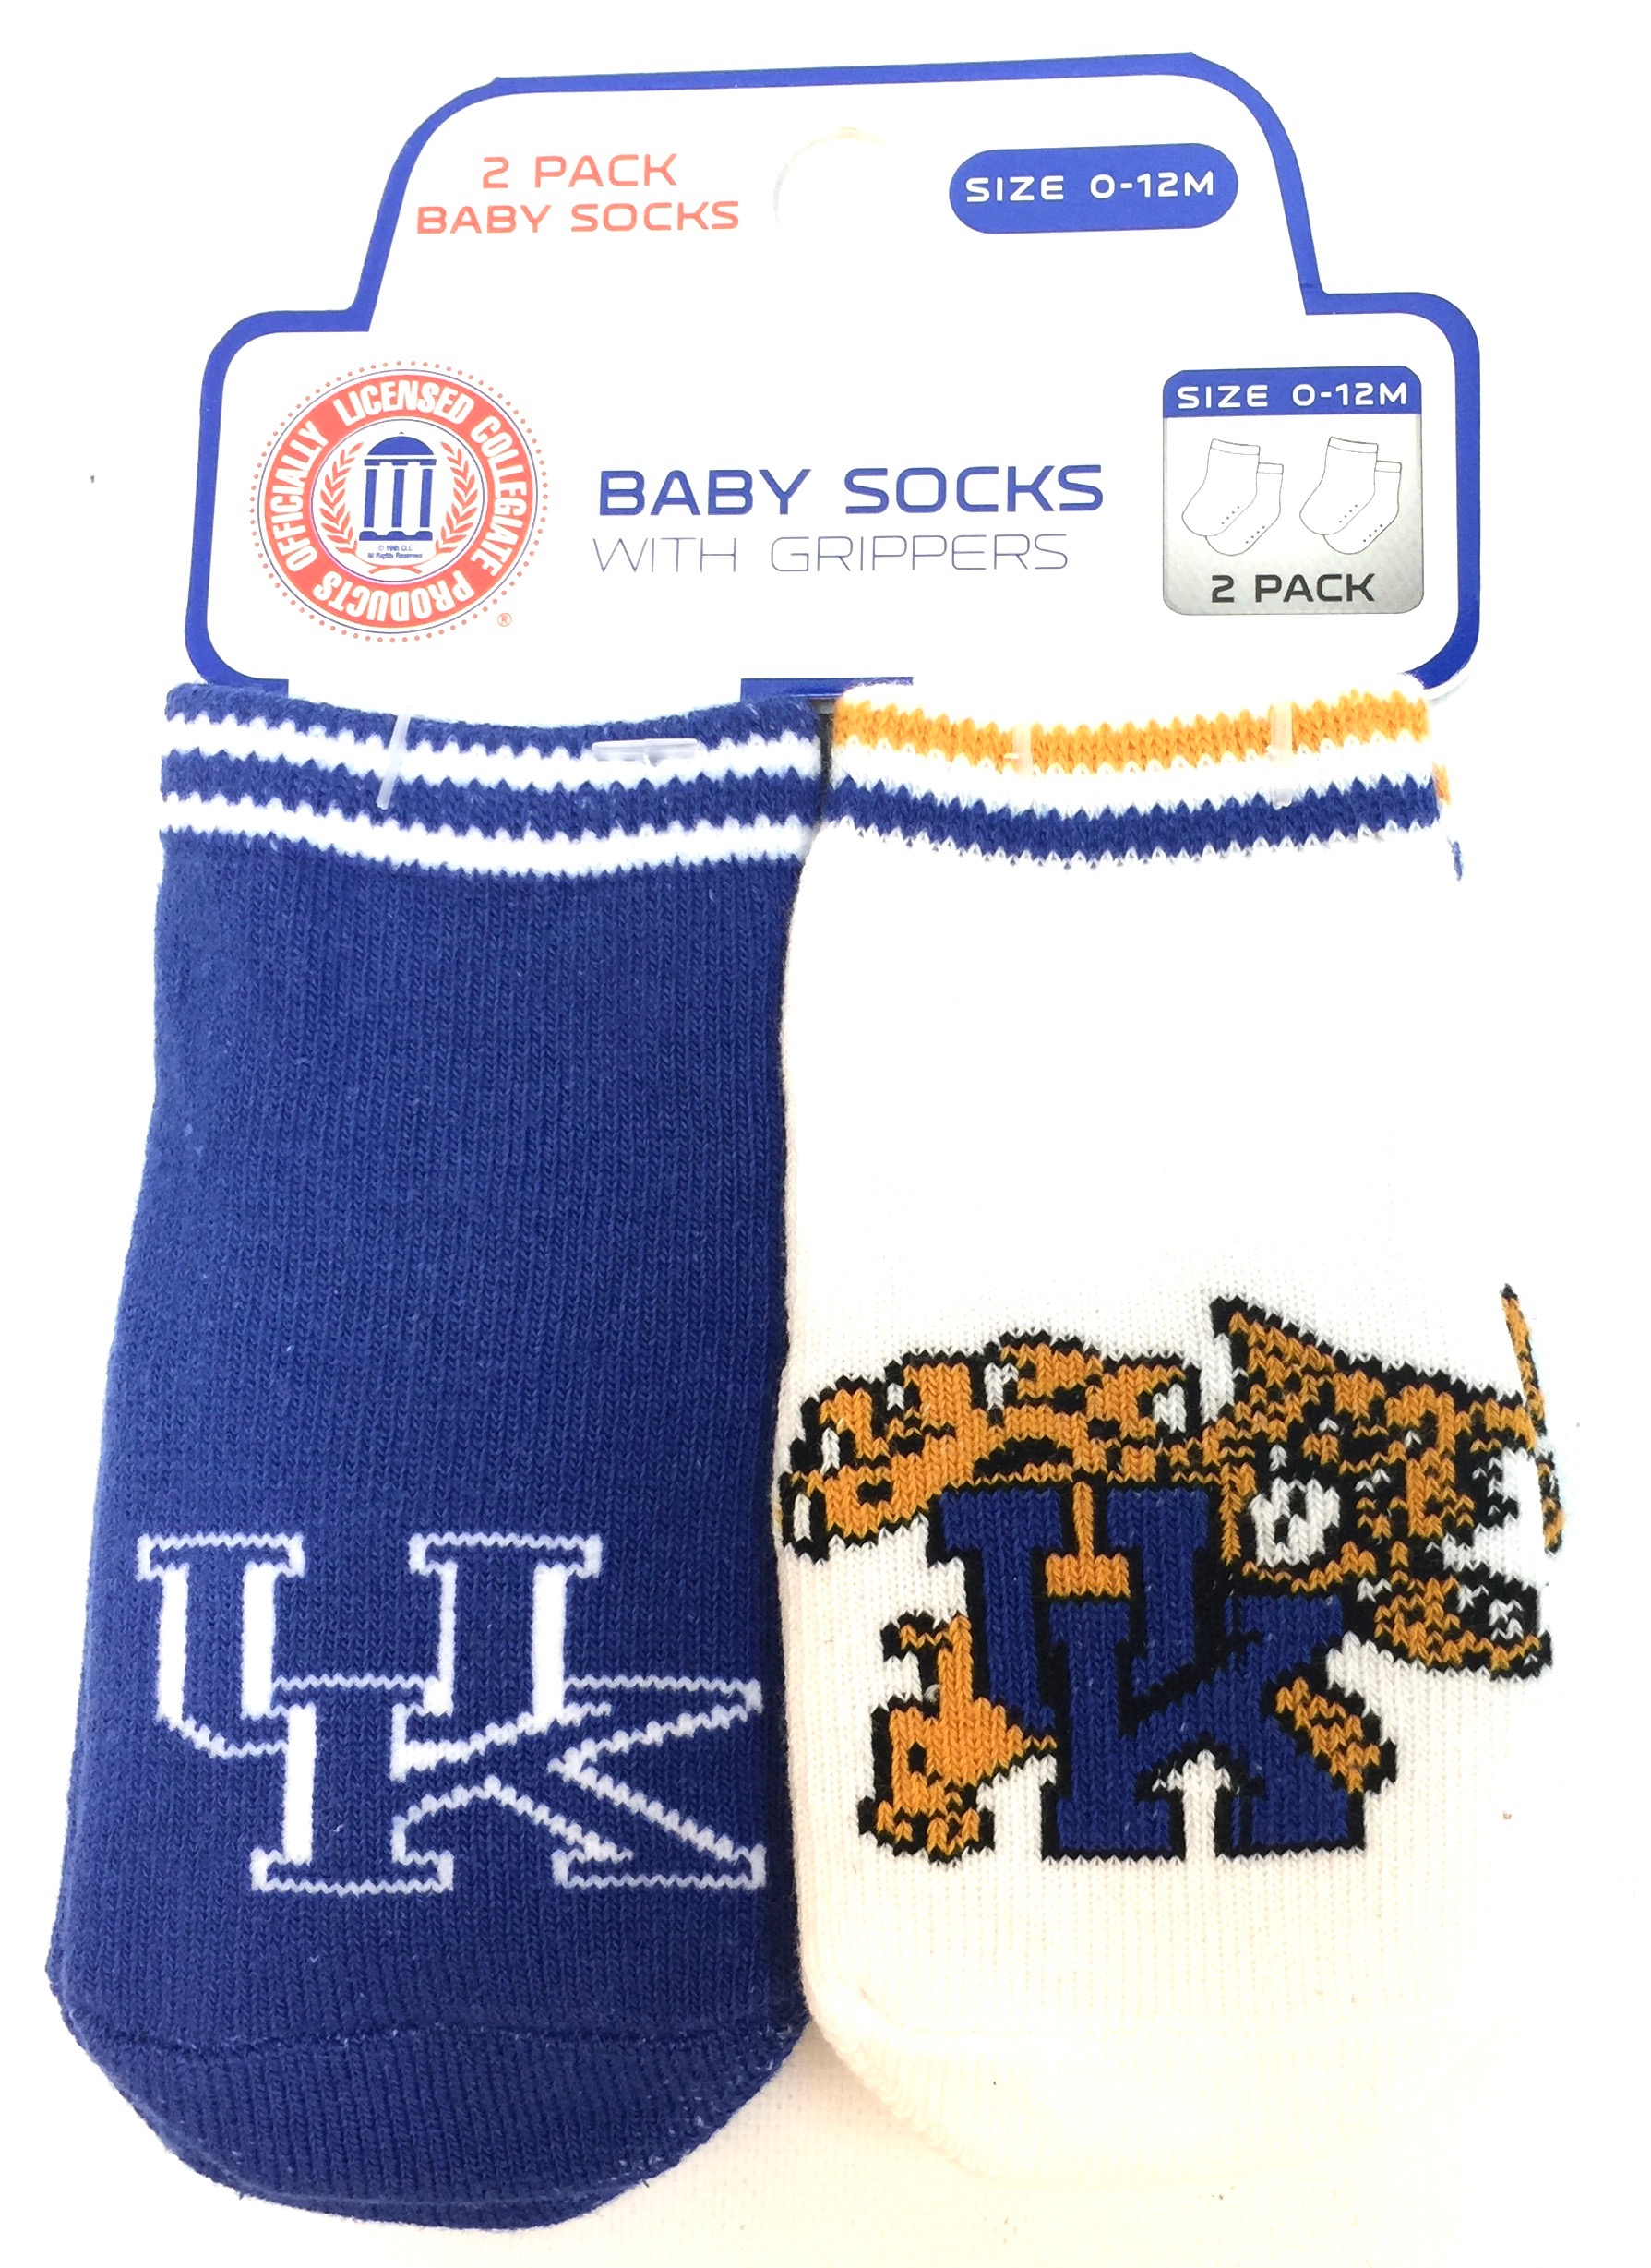 Carded 2 Pk Baby Socks w/Grippers - Kentucky